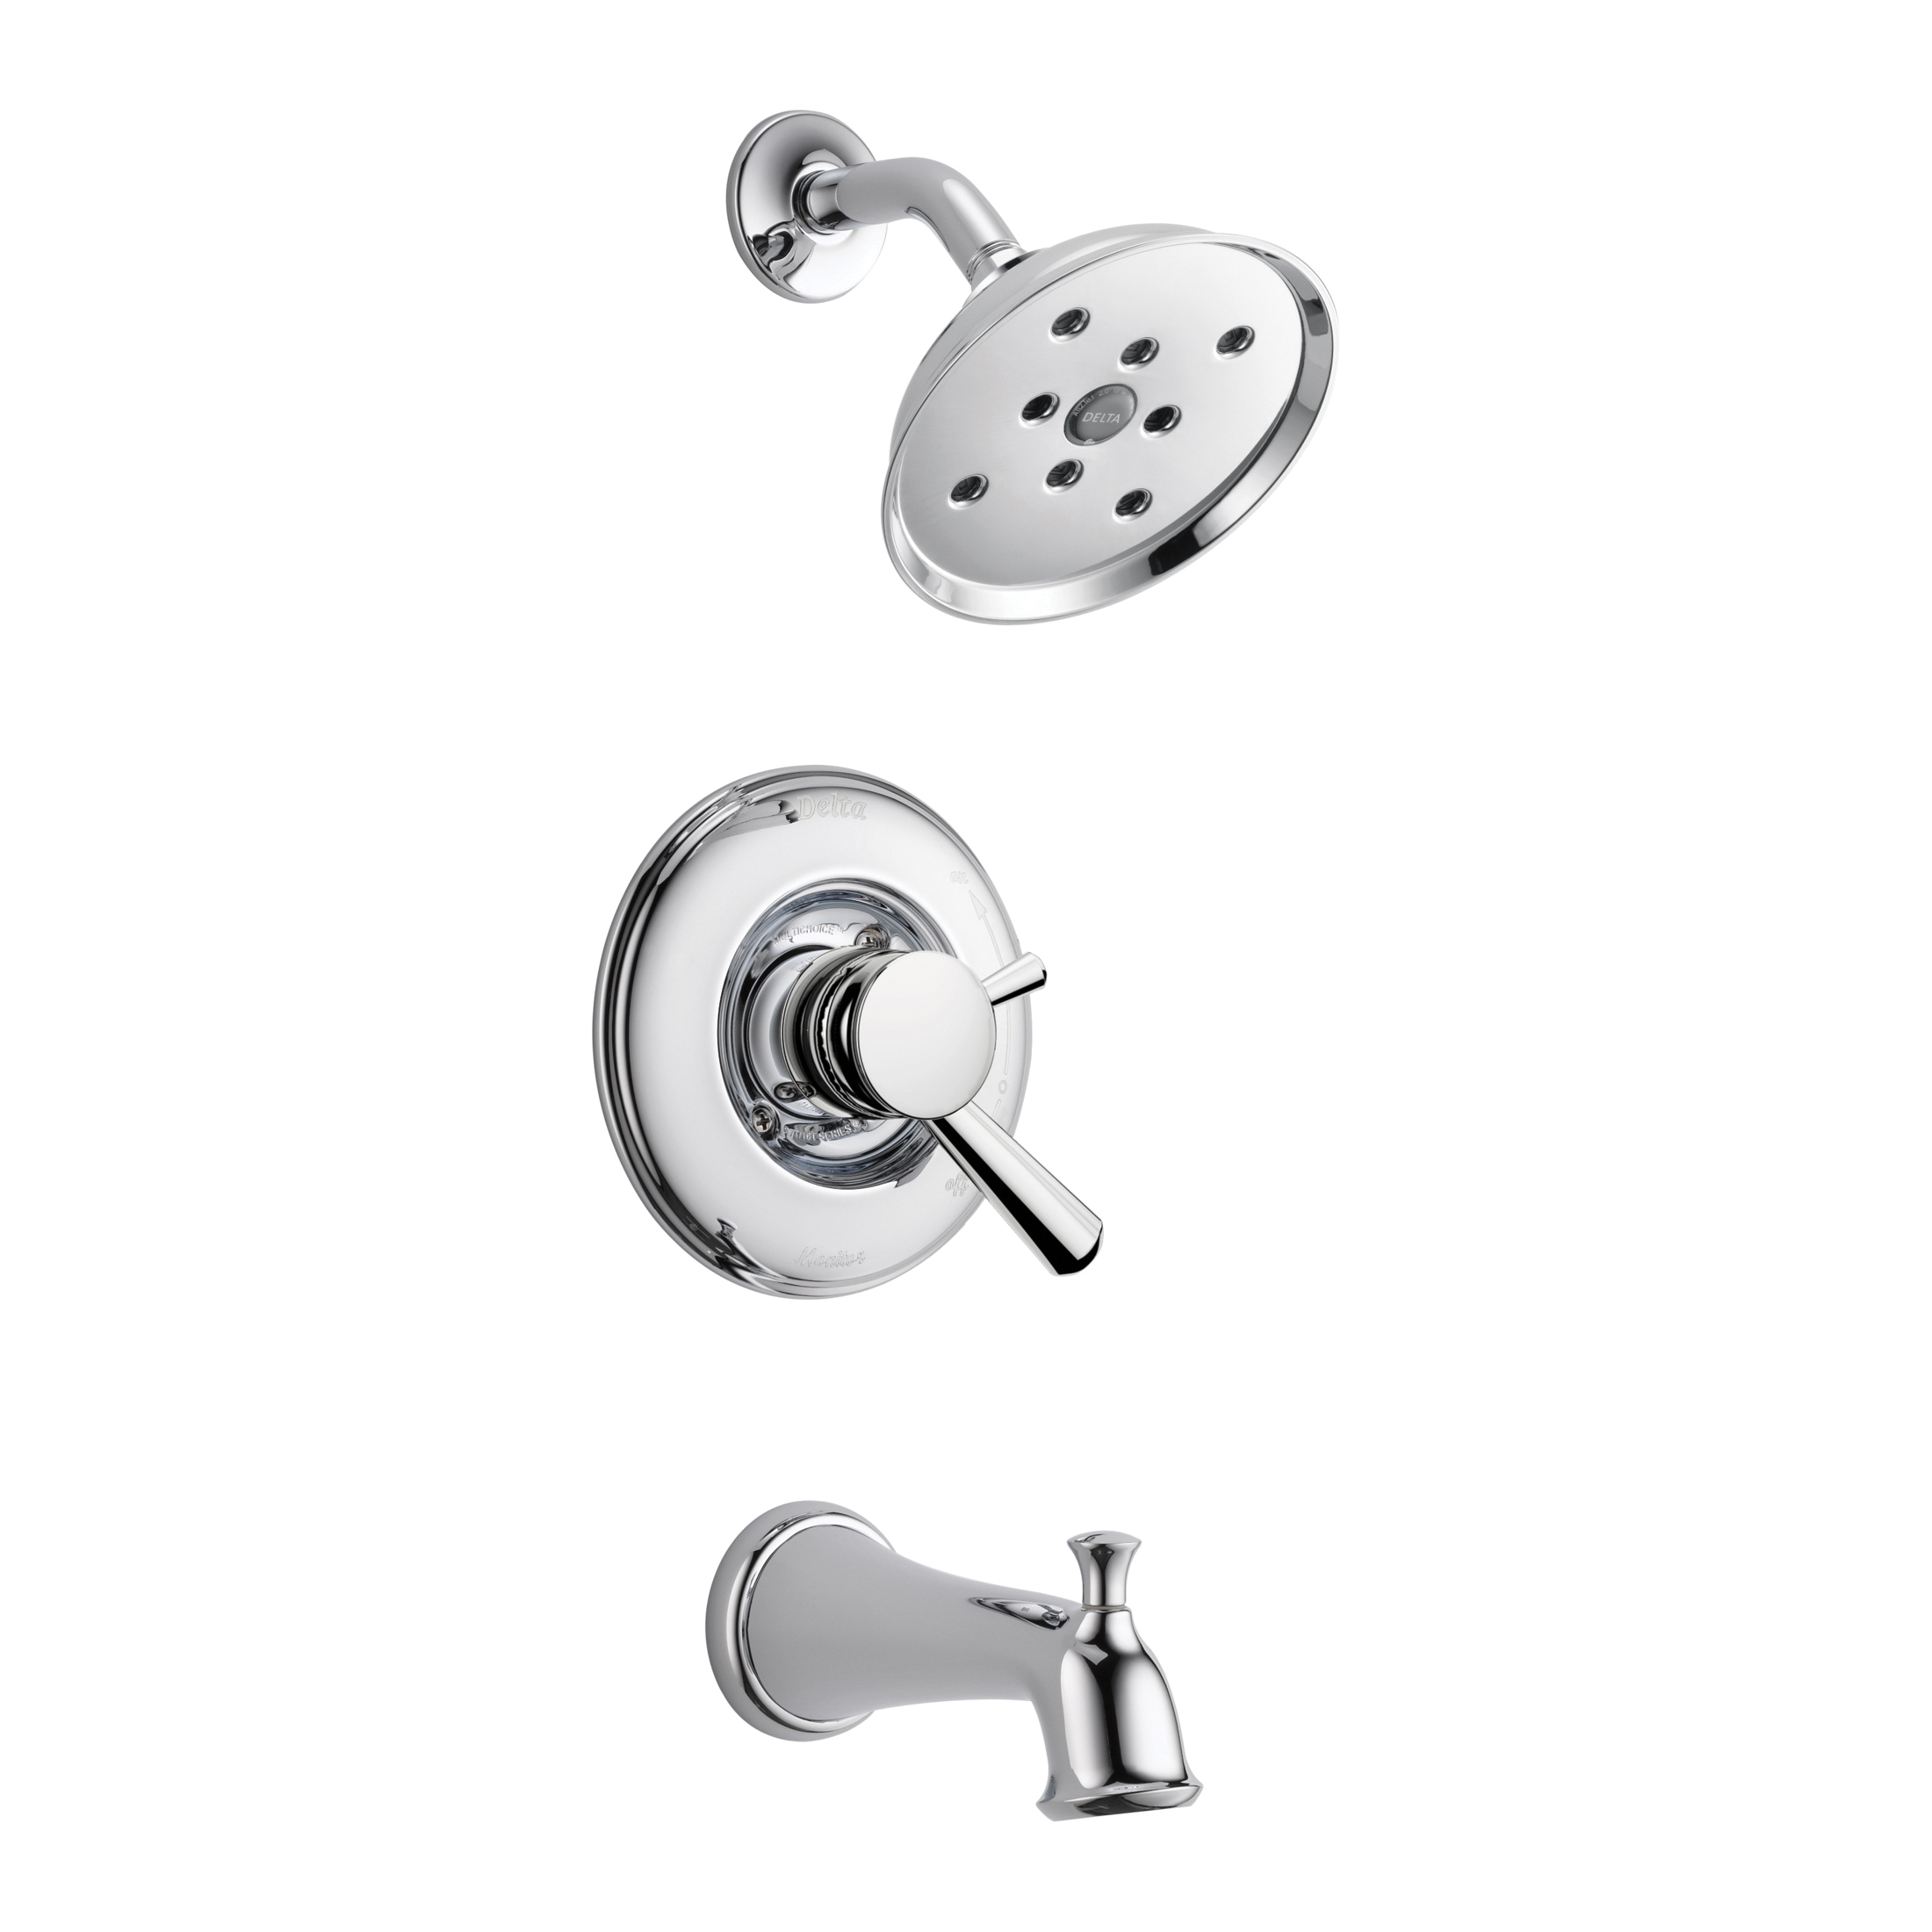 DELTA® T17493 Monitor® 17 Tub and Shower Trim, 1.75 gpm Shower, Hand Shower Yes/No: No, Chrome Plated